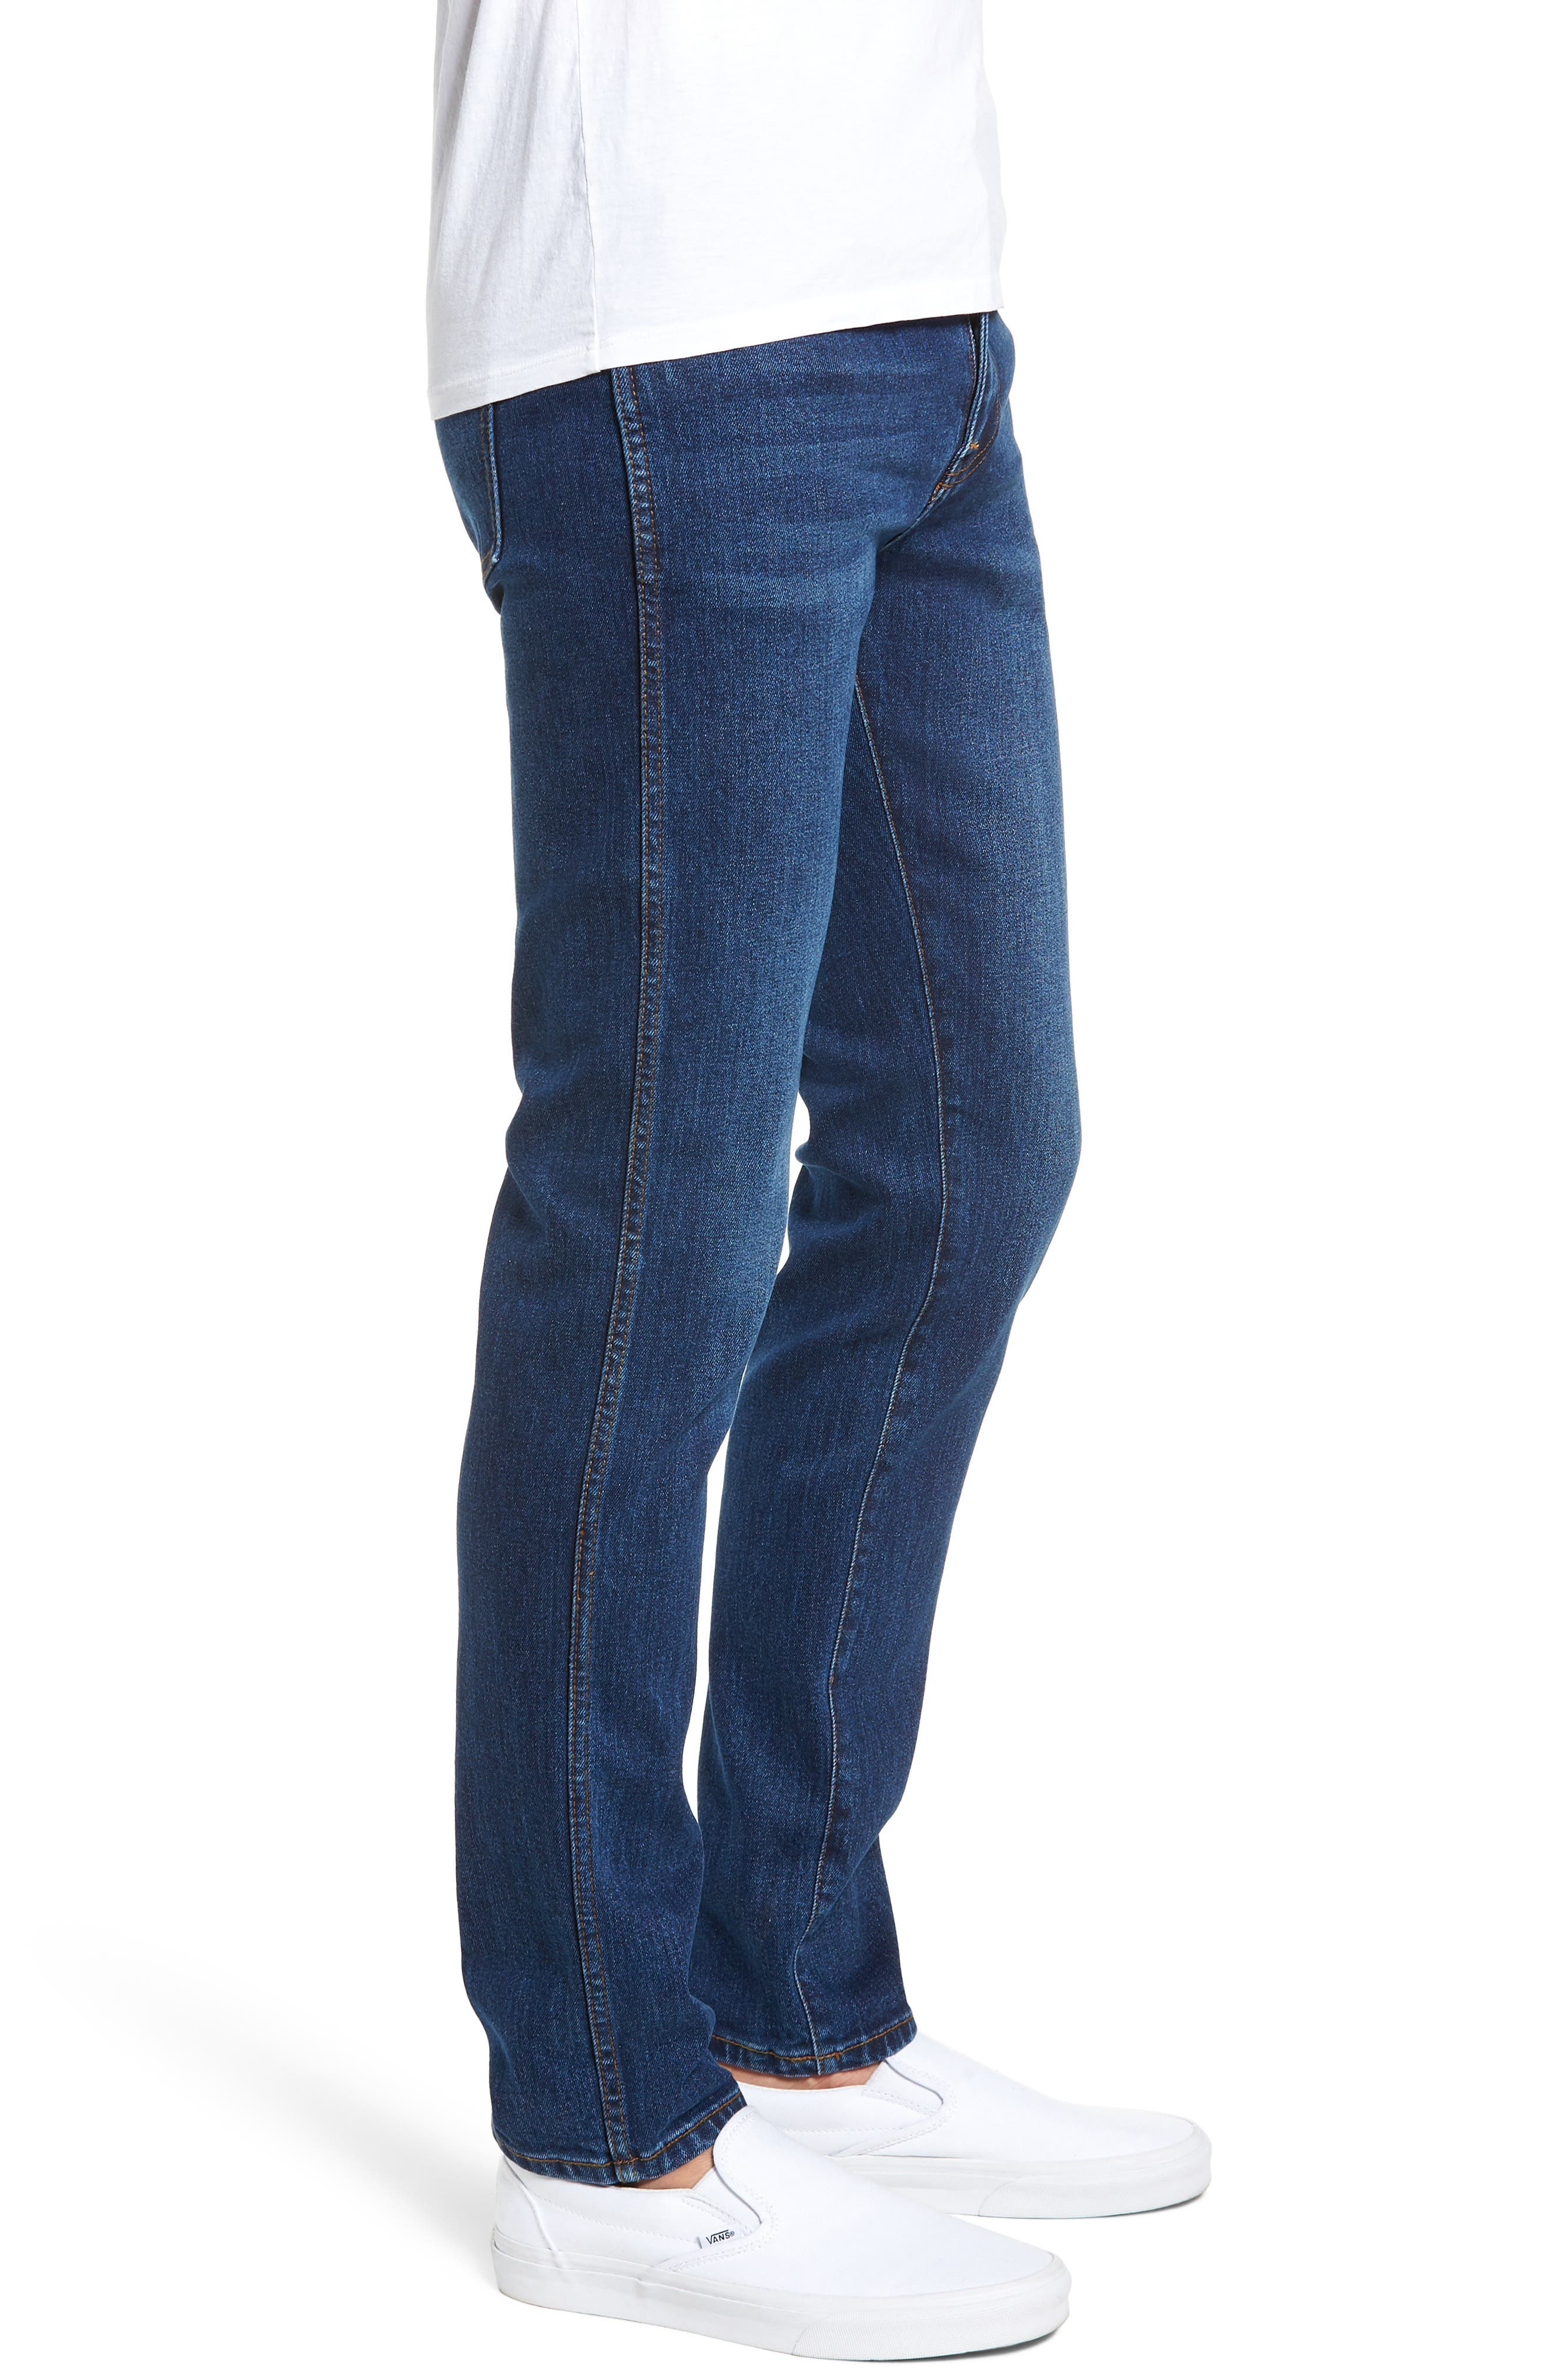 Snap Skinny Fit Jeans,                             Alternate thumbnail 3, color,                             DARK SHADED BLUE